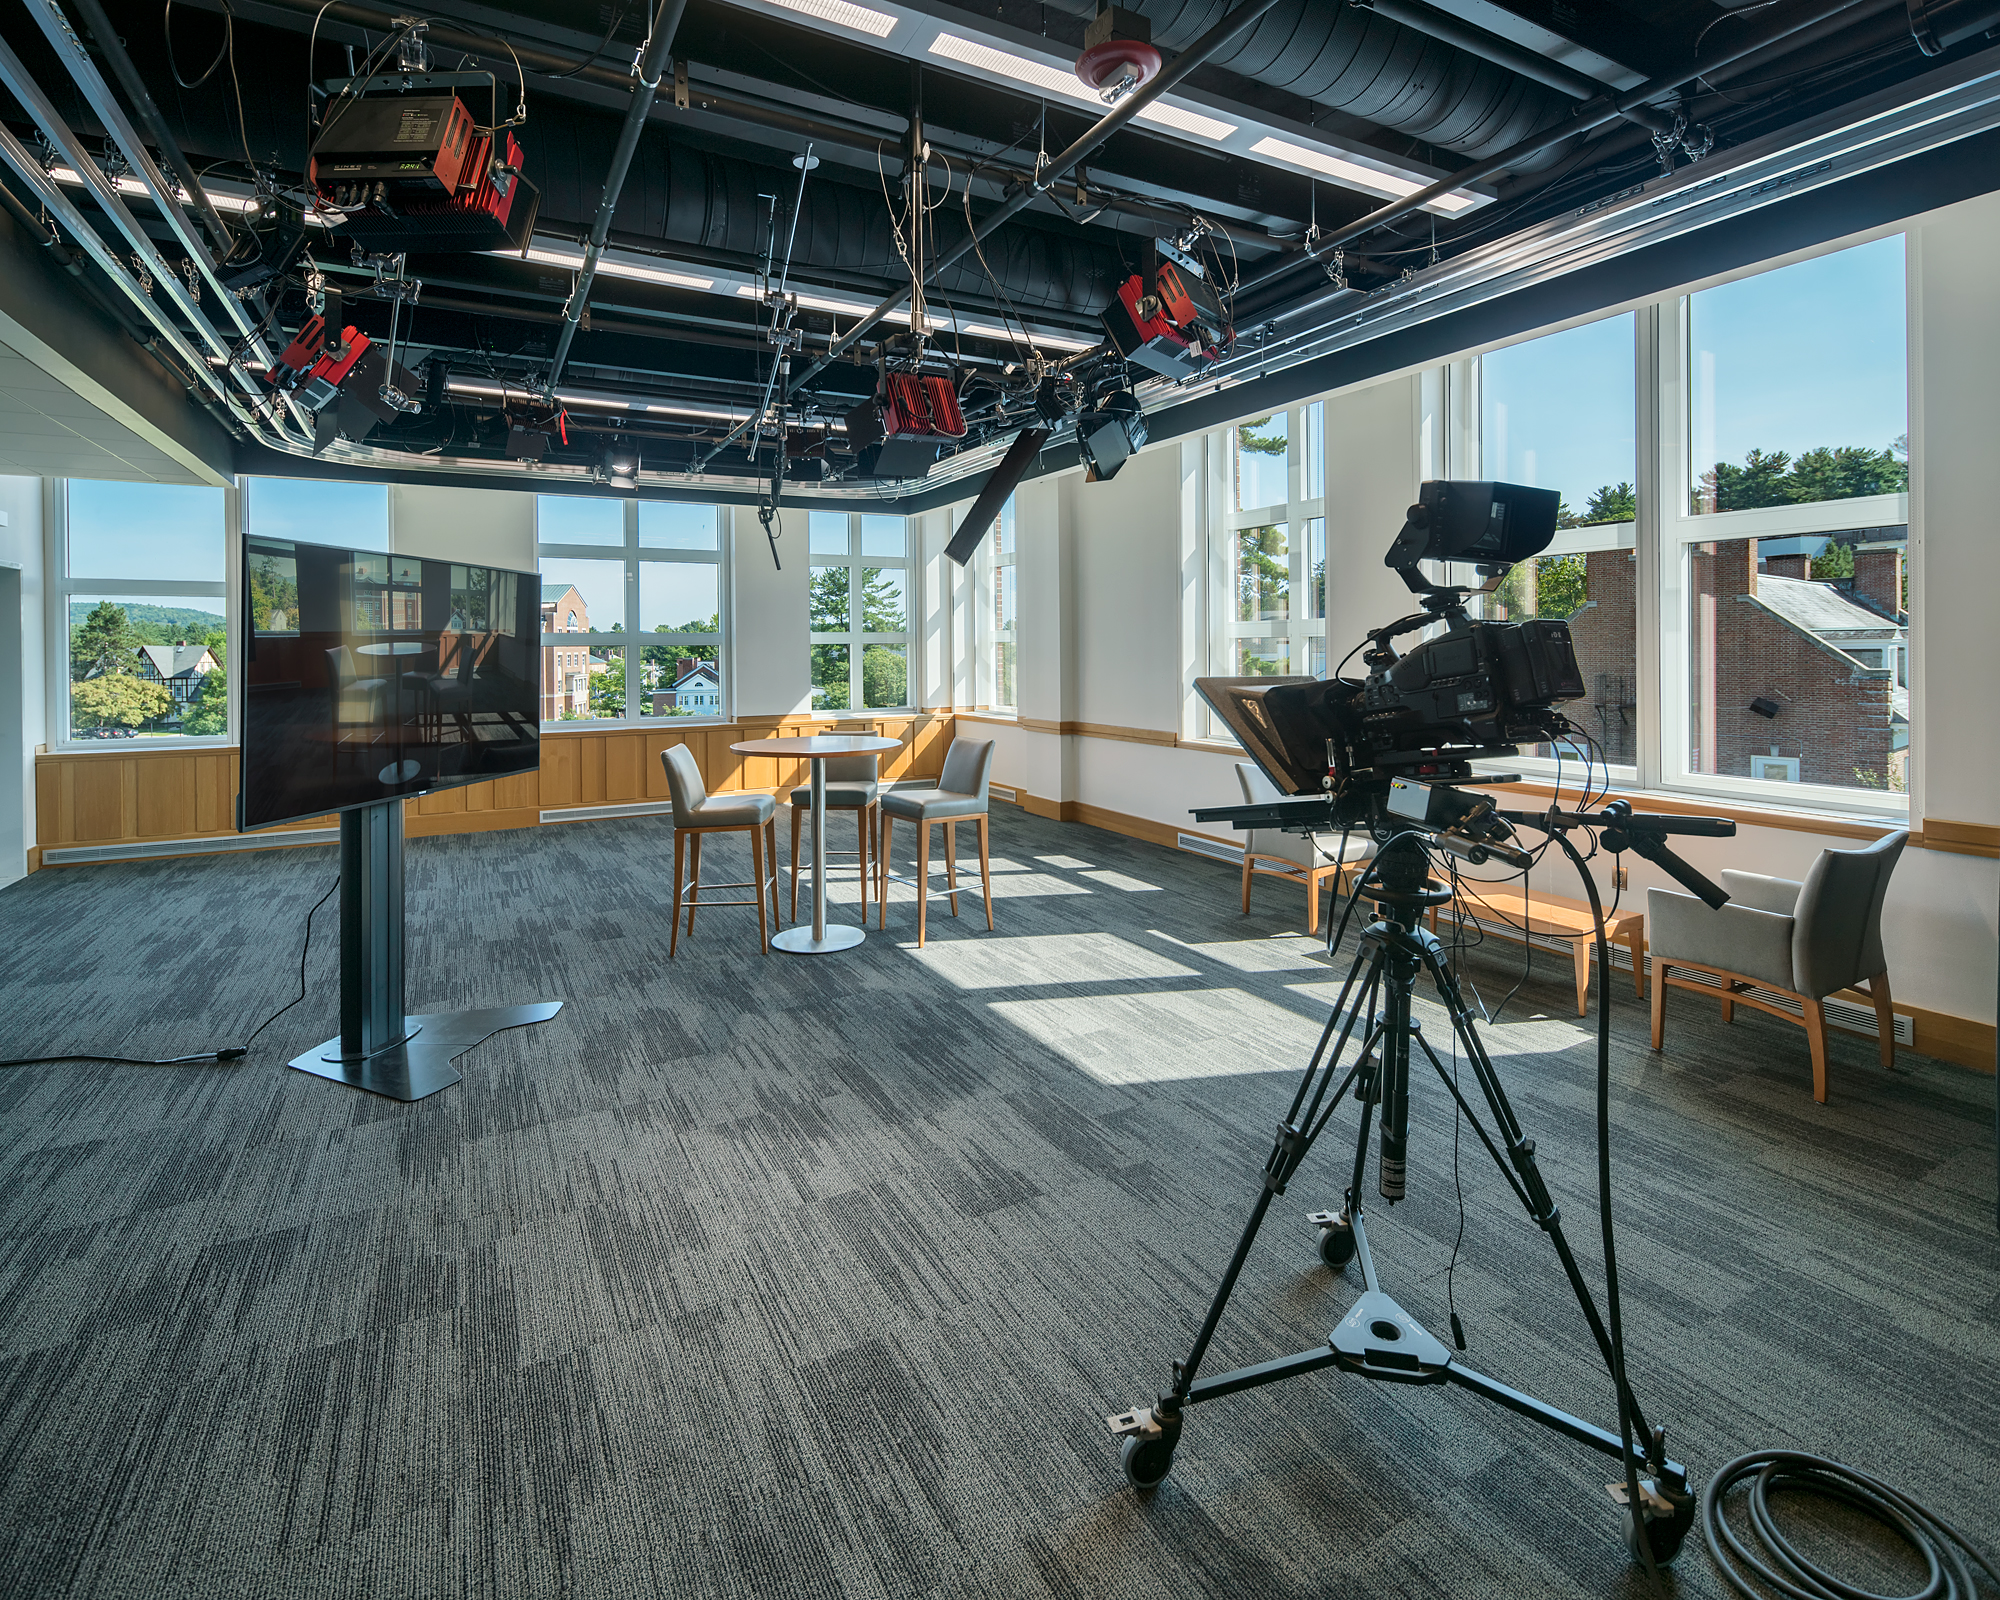 Dartmouth EdX Teaching Theater - Studio